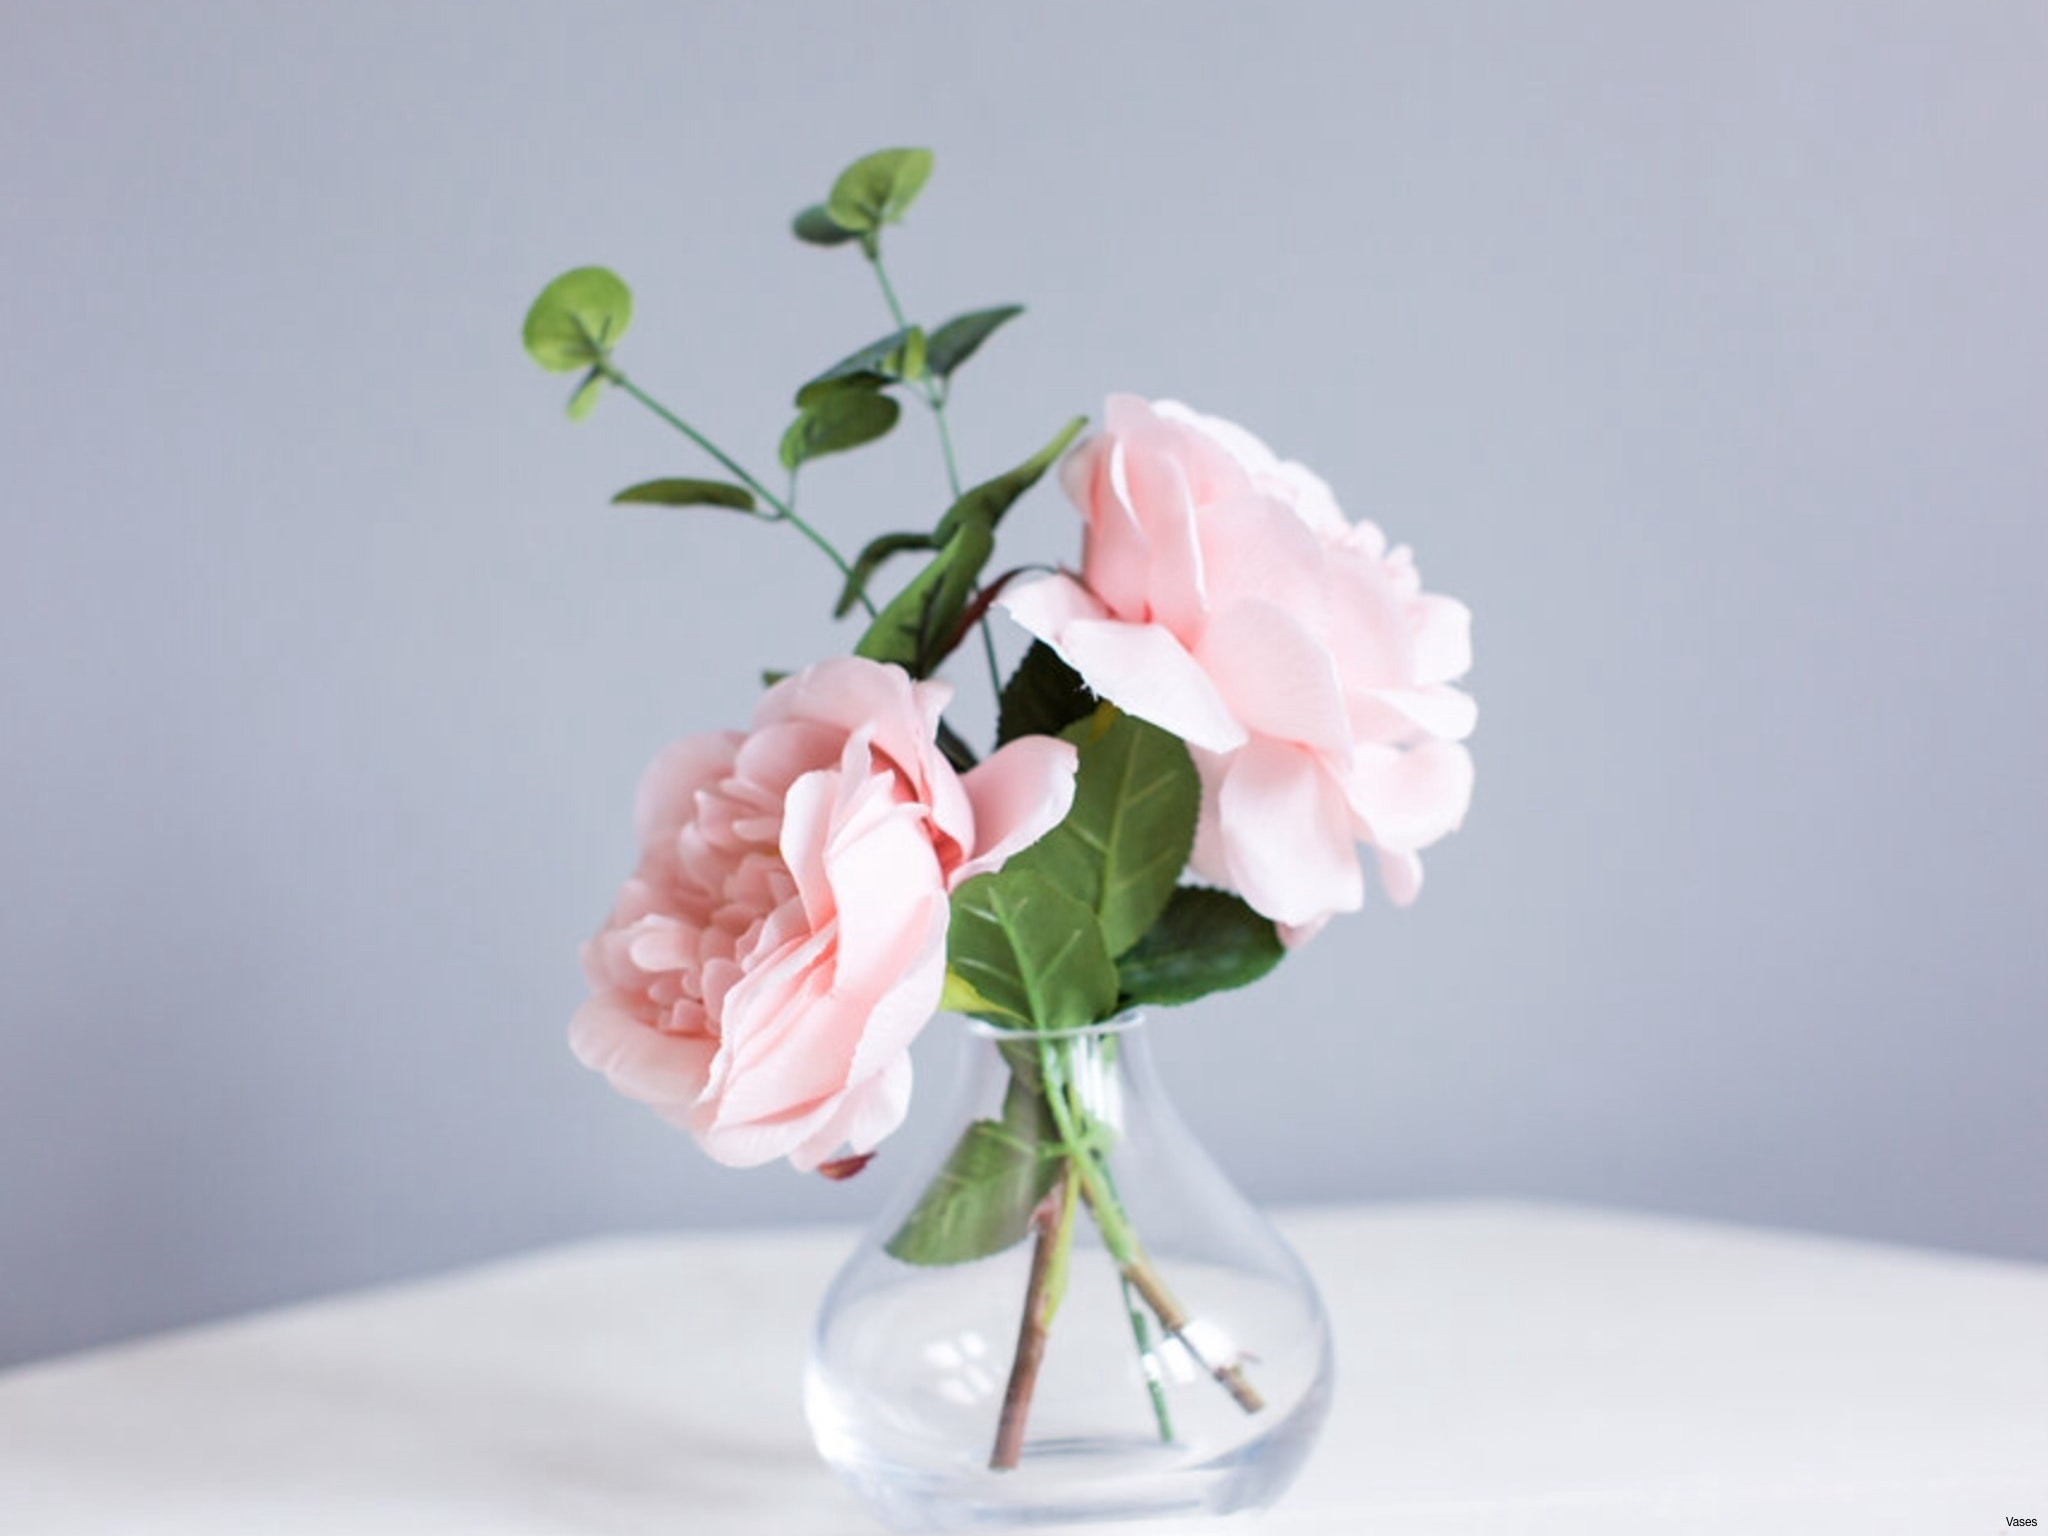 unity sand vases with stopper of floral arrangement inspiration page 38 inspiration for your regarding cool wedding ideas as for h vases bud vase flower arrangements i 0d scheme wedding